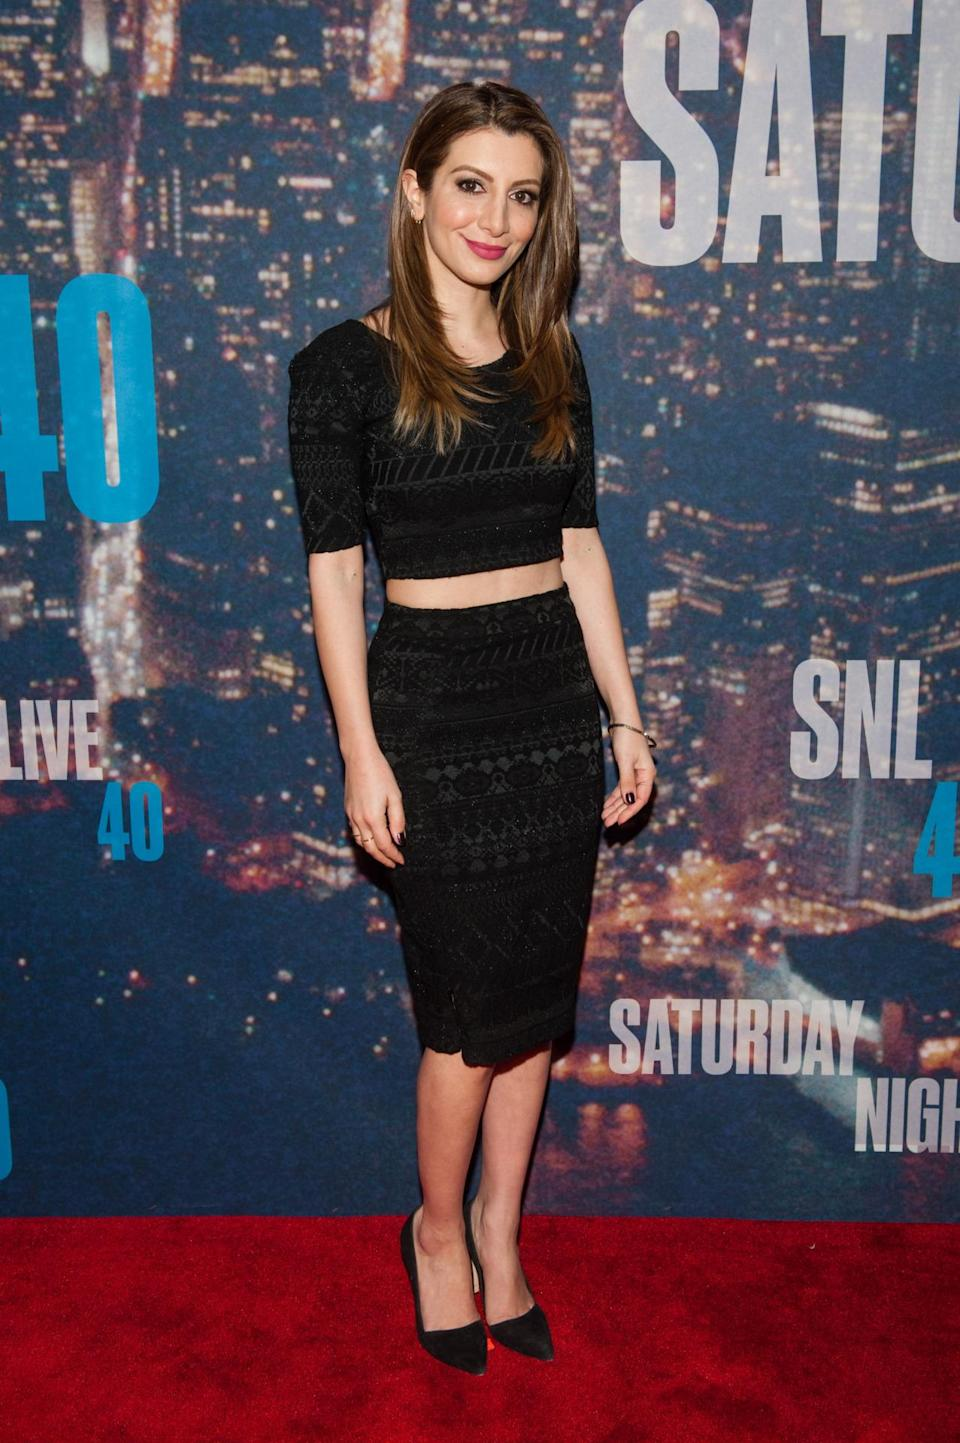 The former cast member, who exited the show last year, attended the event in a black pencil skirt and crop top, showing off just a little bit of midriff.